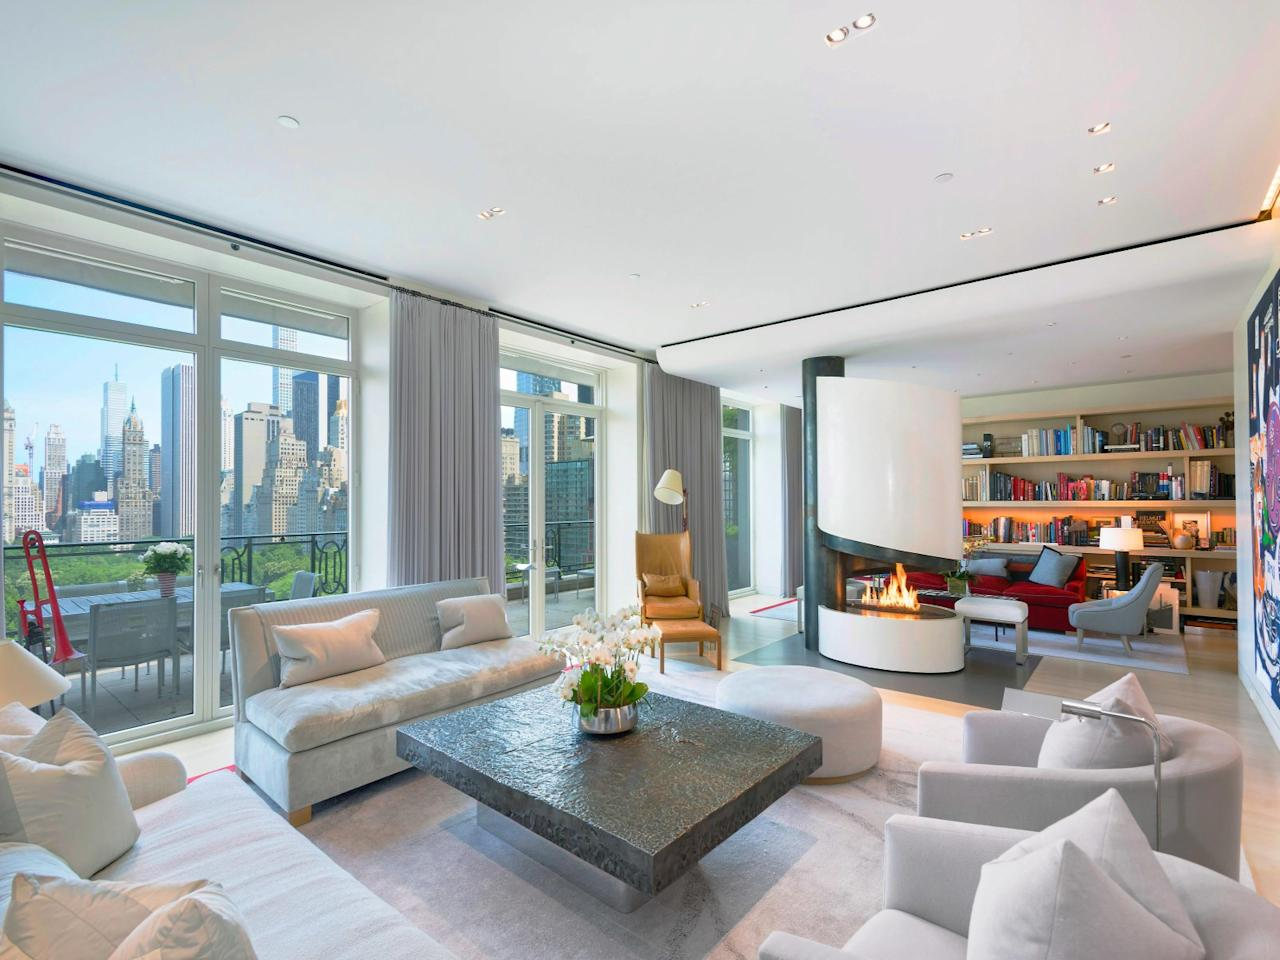 <p>Sting: Rock star Sting put his Manhattan penthouse on the market – and if the view didn't blow you away, the price would. The apartment, which overlooks the famous Central Park in New York, is being offered for $56 million – about £43 million. (Sotheby's International Realty) </p>